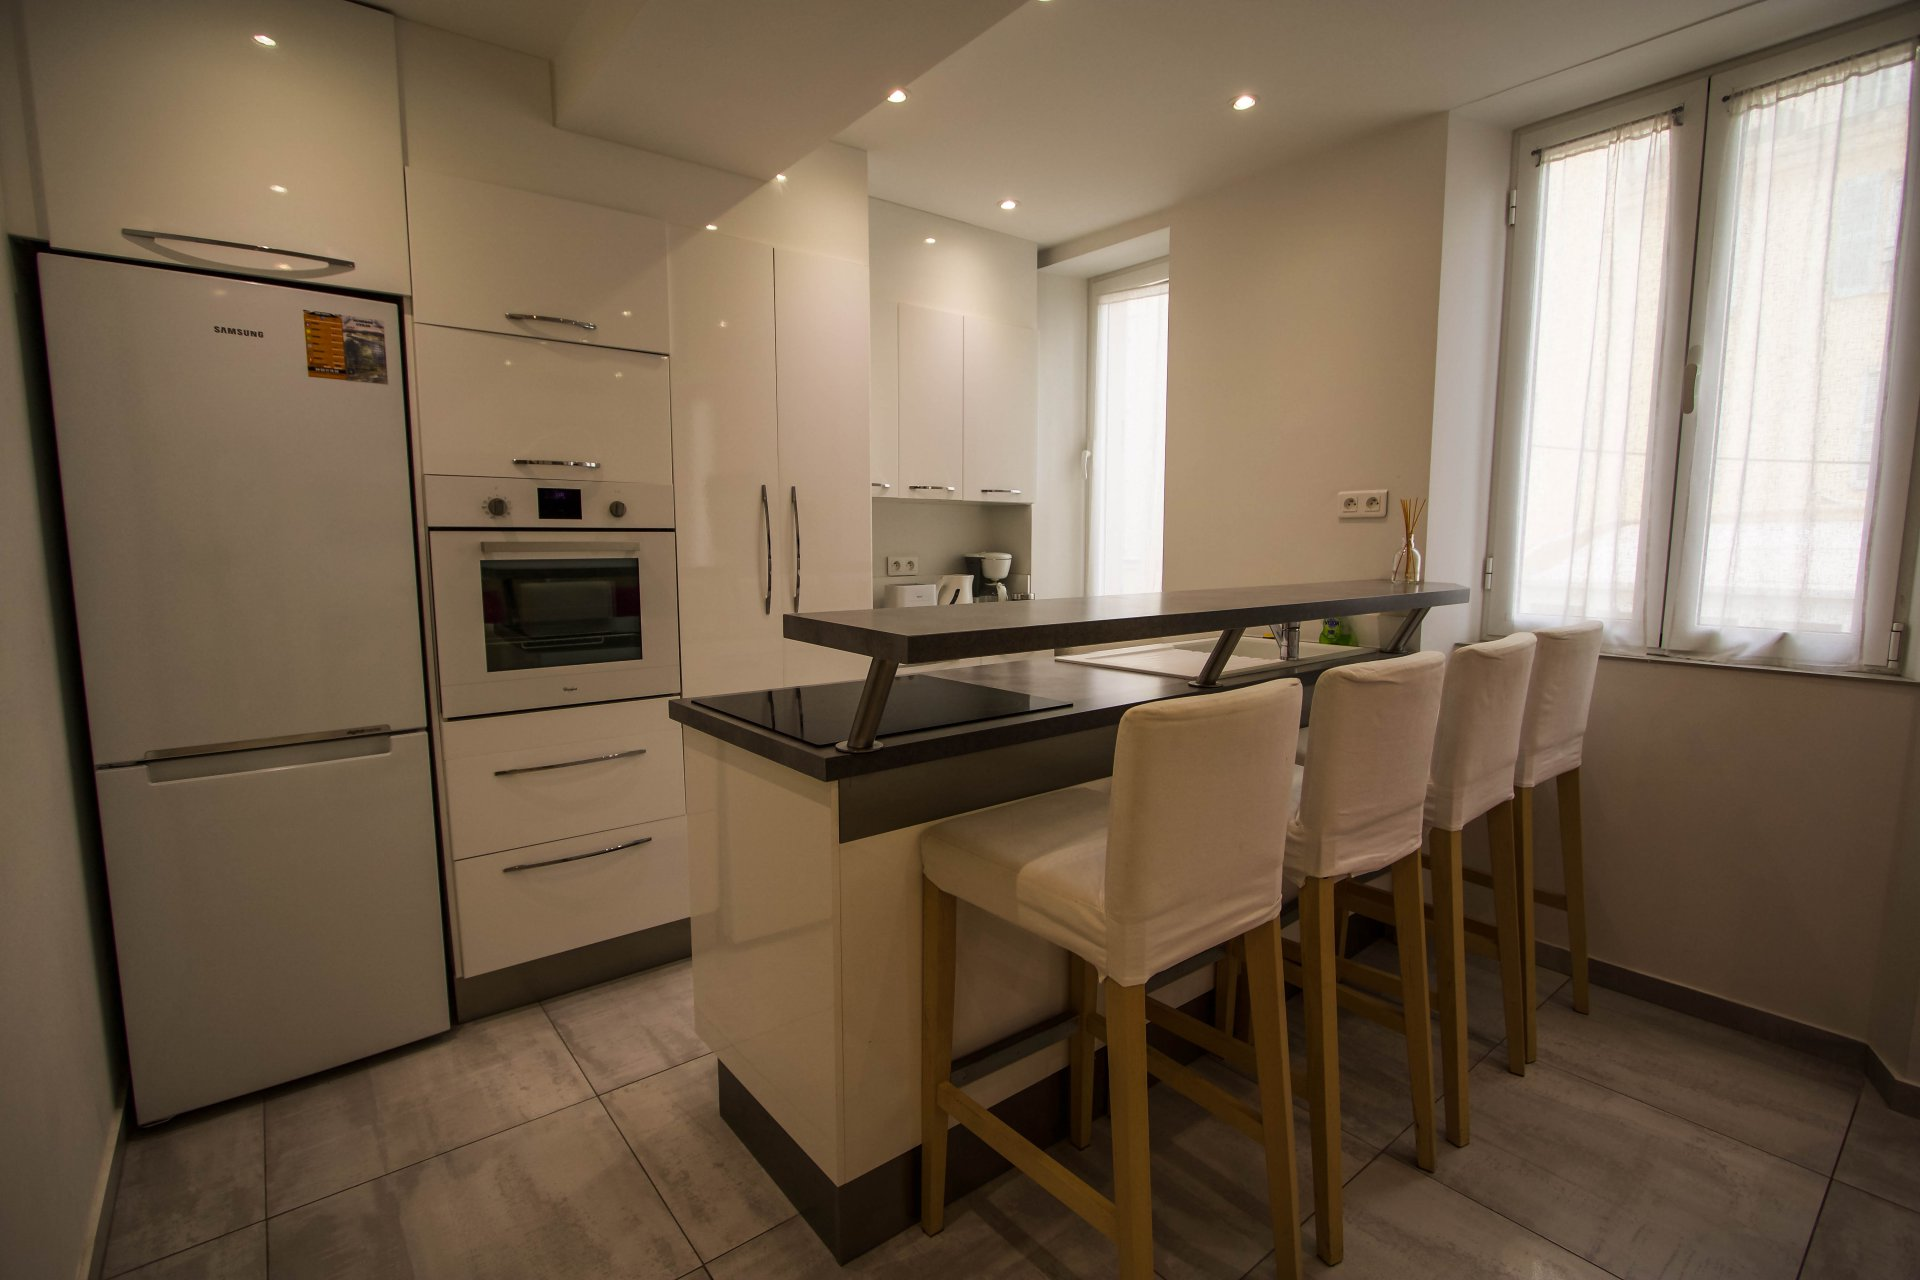 Two-bedroom apartment in Cannes, close to Palais des Festivals and the sea